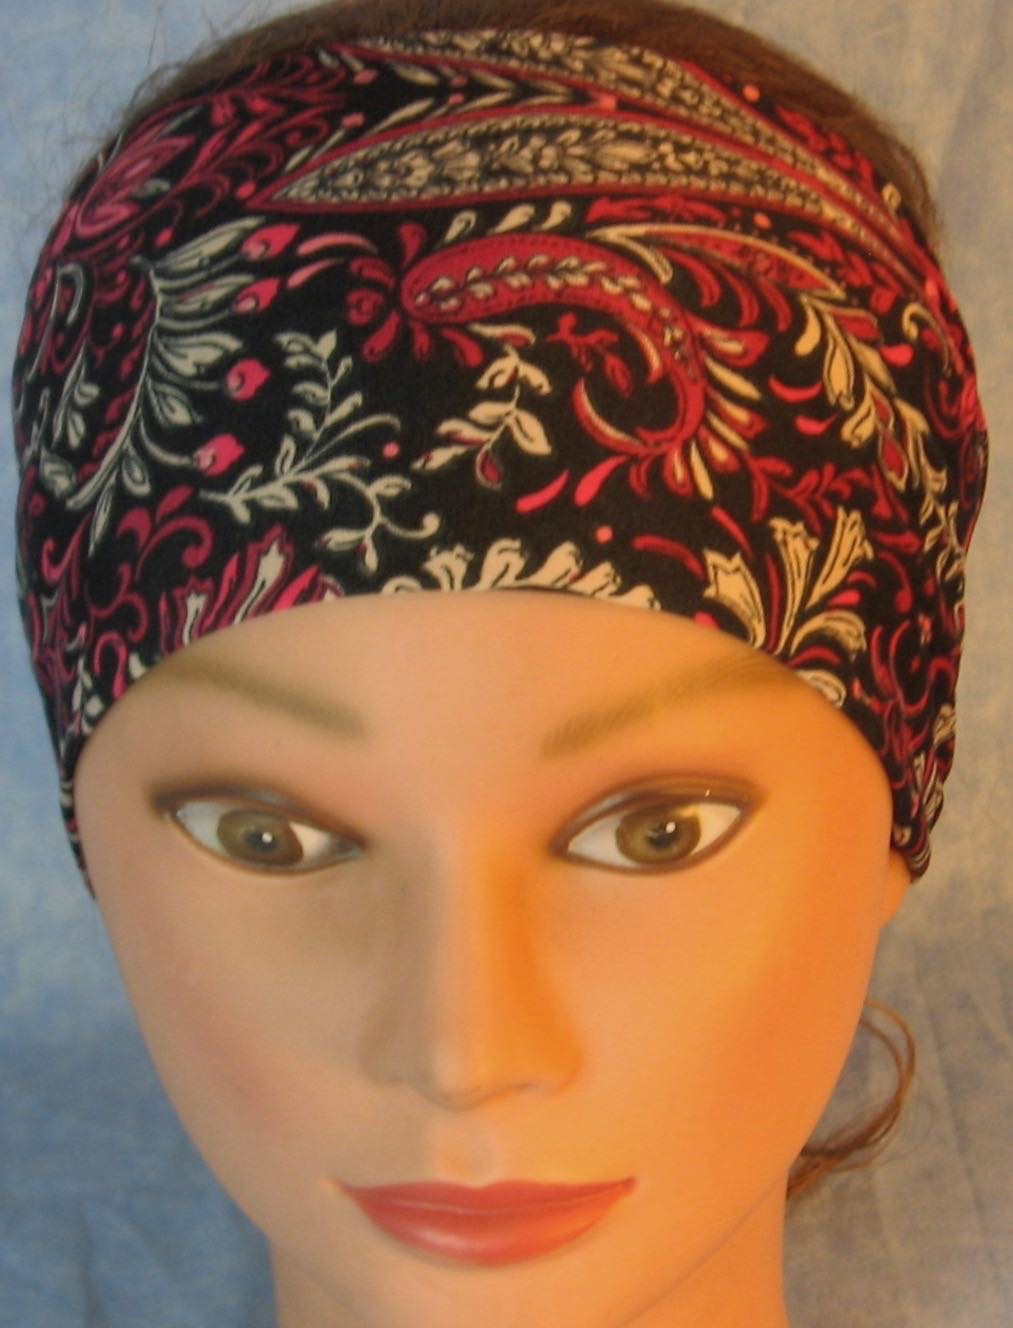 Headband-Pink Flower Paisley Leaves On Black Performance Knit-Adult S